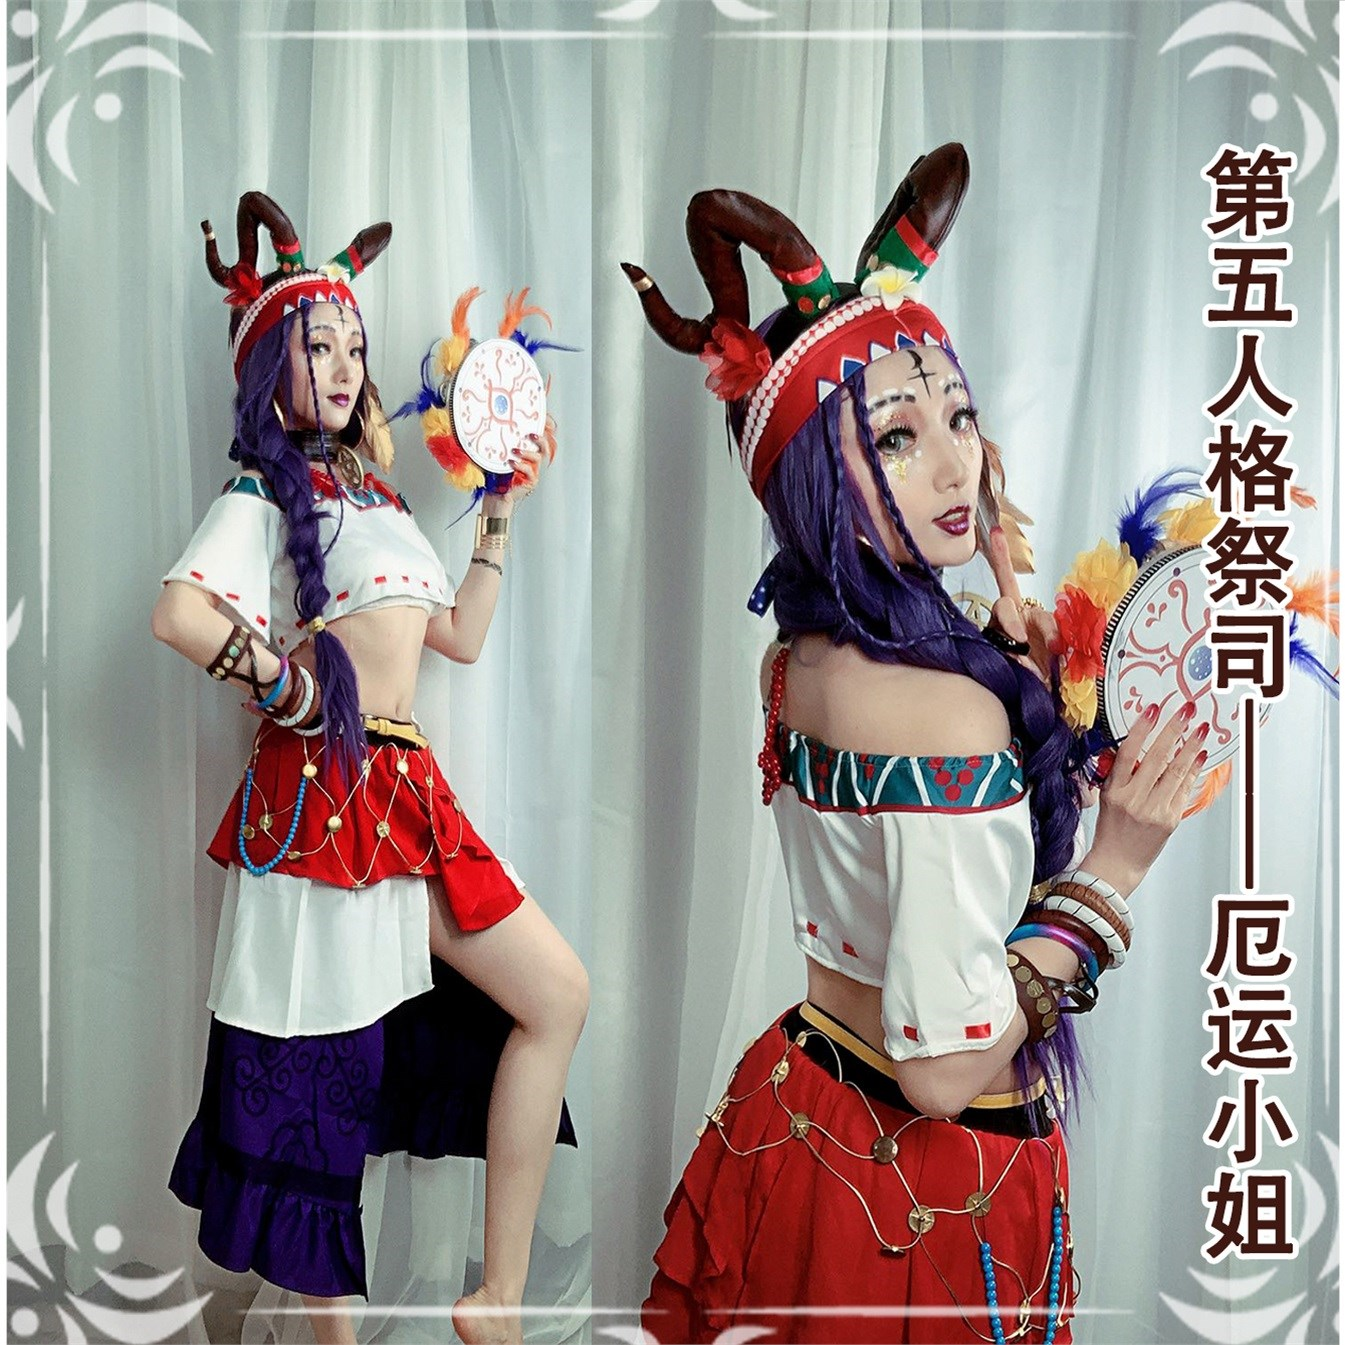 Fifth 5 personality cos dress priest Miss doom Cosplay clothing full set animation wig tambourine girl